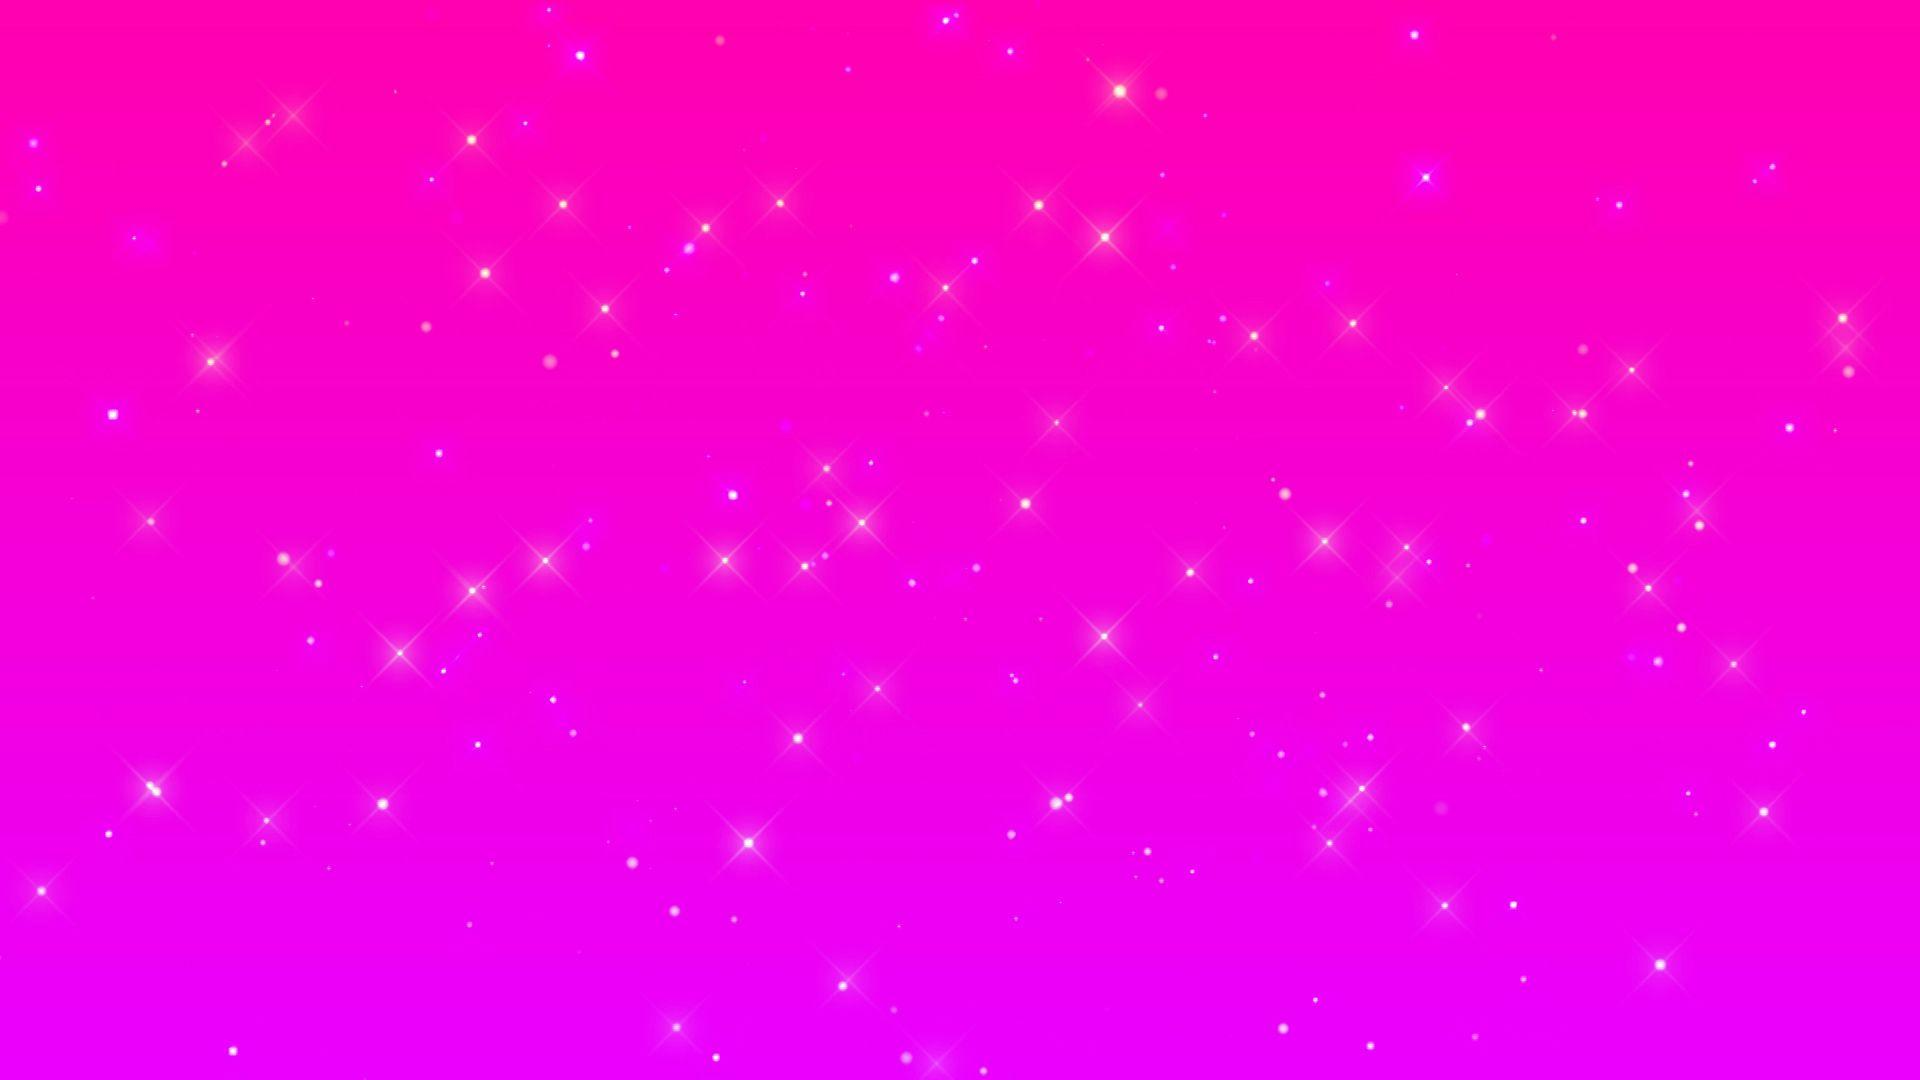 Neon colors background pink images for Bright pink wallpaper uk